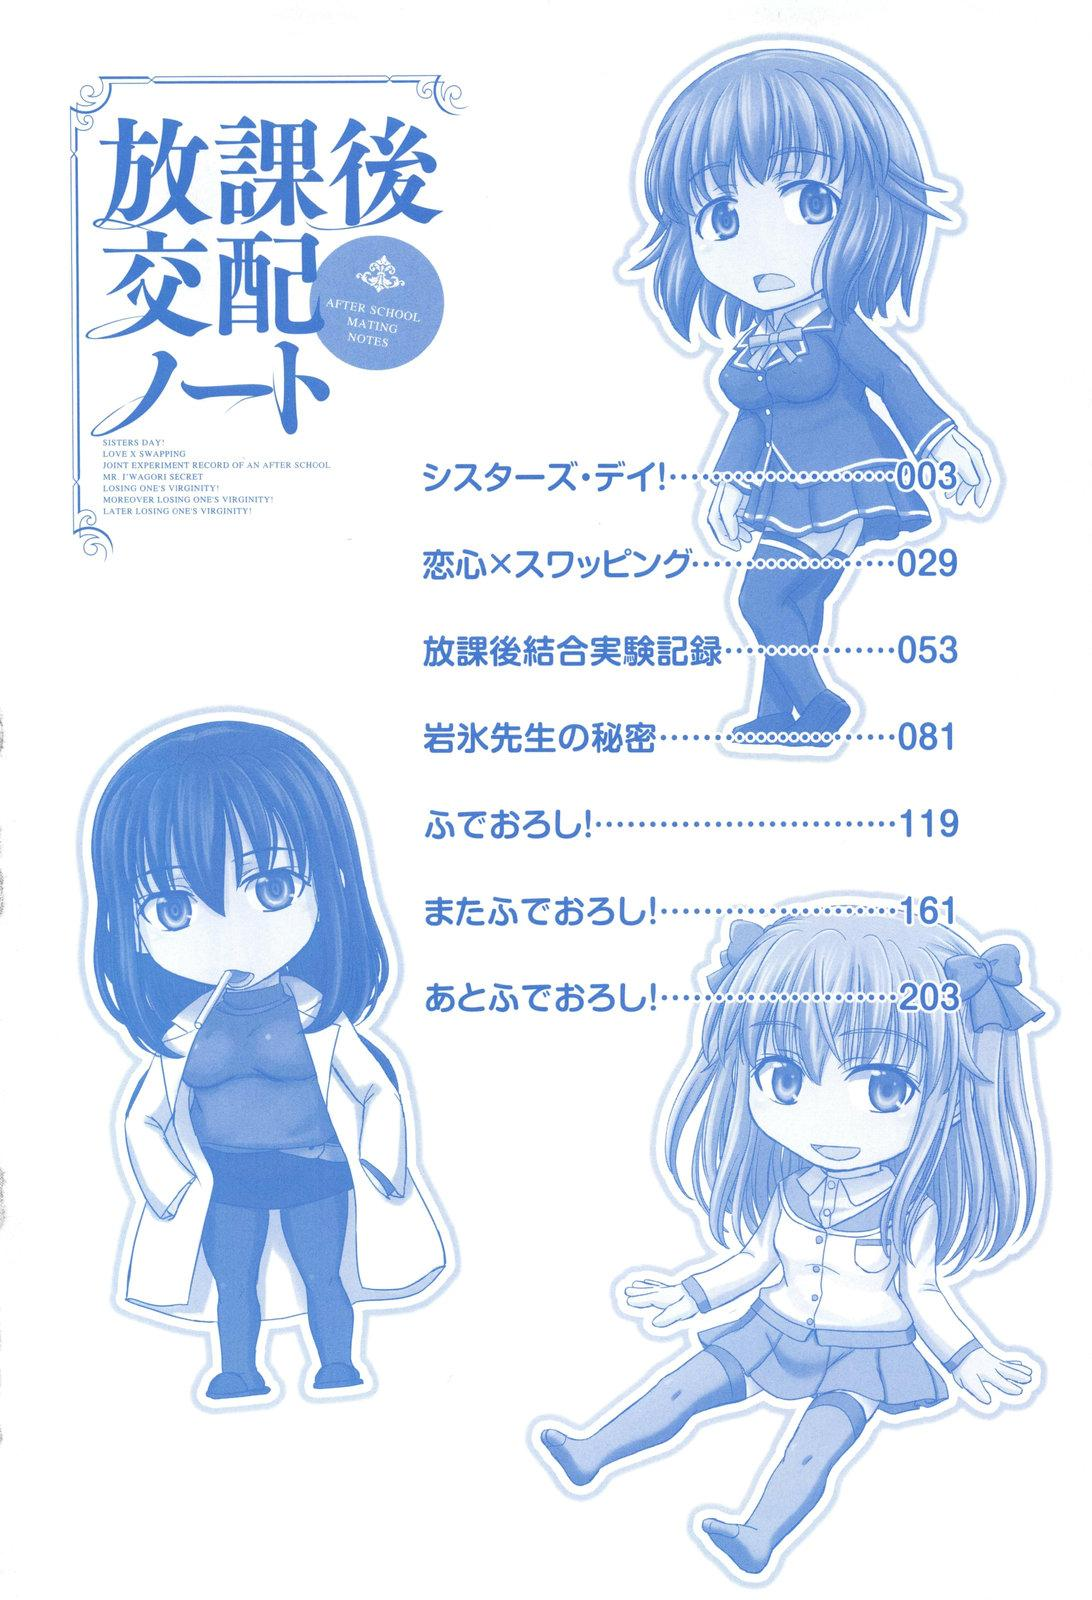 Houkago Kouhai Note   After School Mating Notes 5